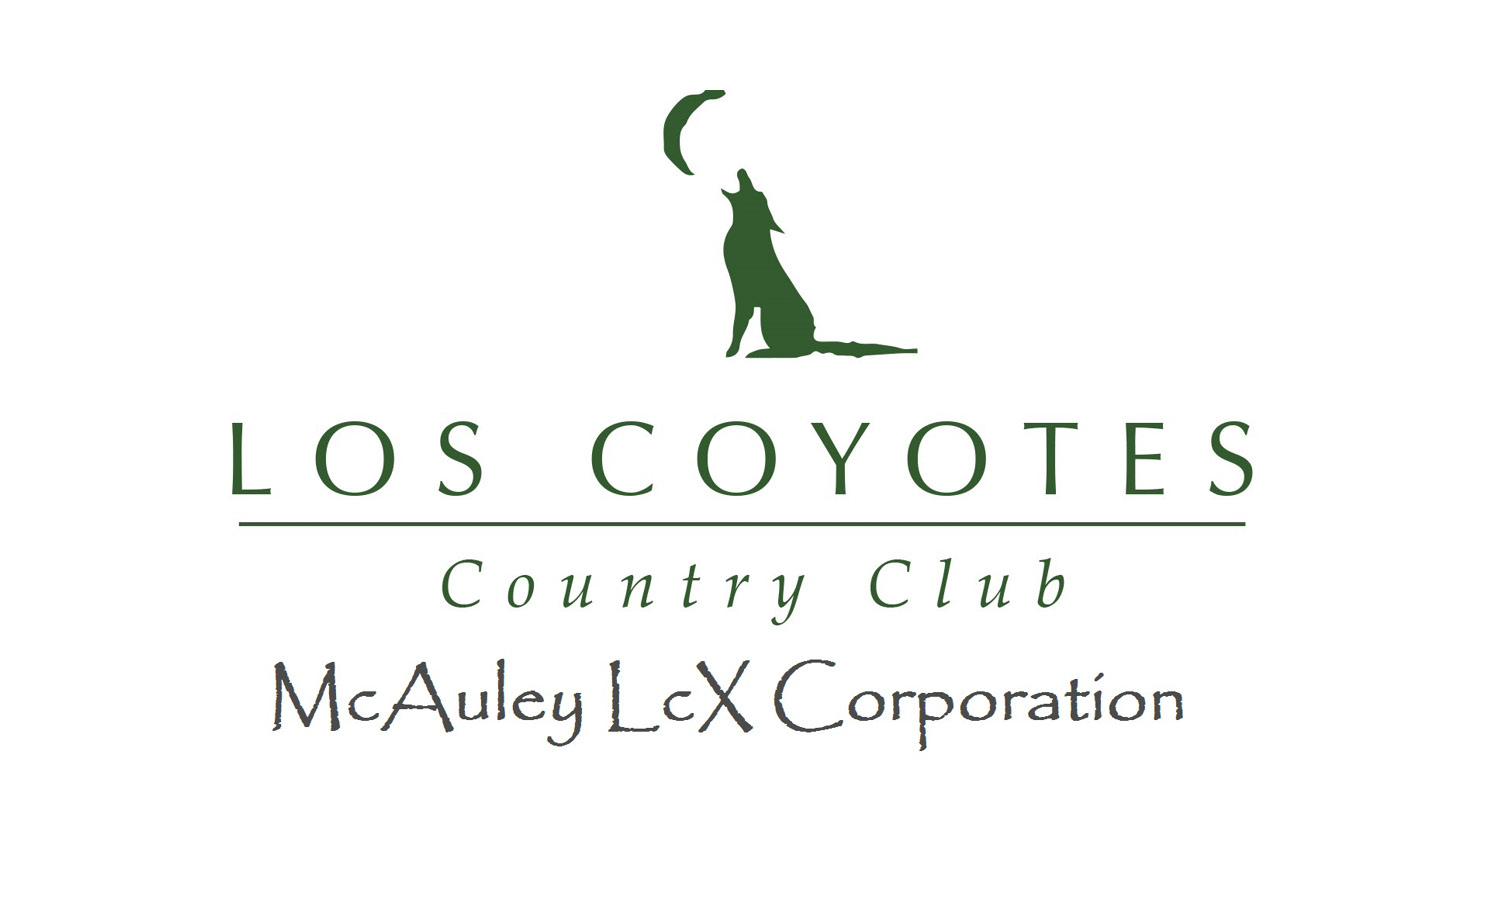 Los Coyotes Country Club McAuley LcX Corporation